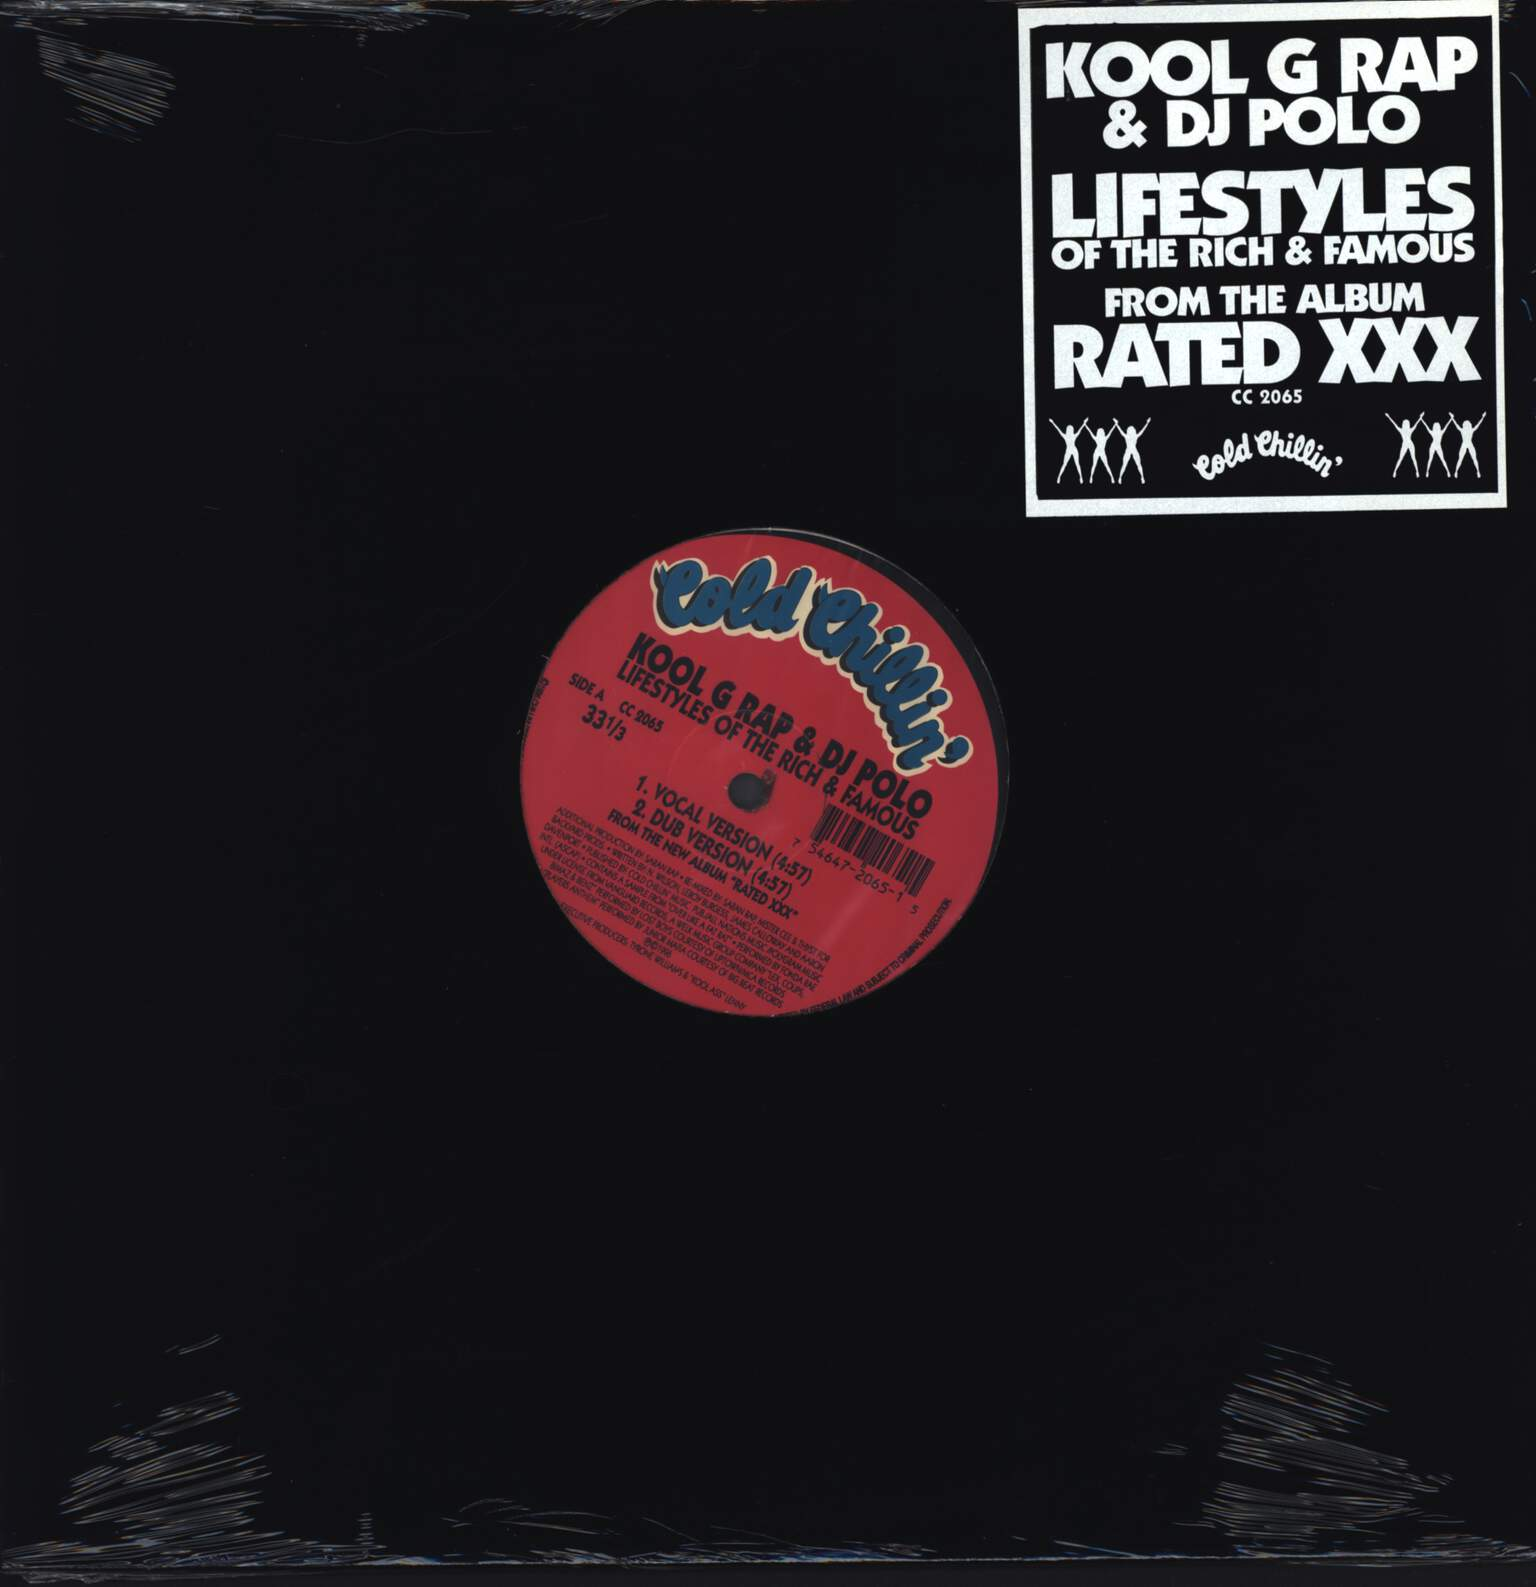 "Kool G Rap & D.J. Polo: Lifestyles Of The Rich & Famous, 12"" Maxi Single (Vinyl)"